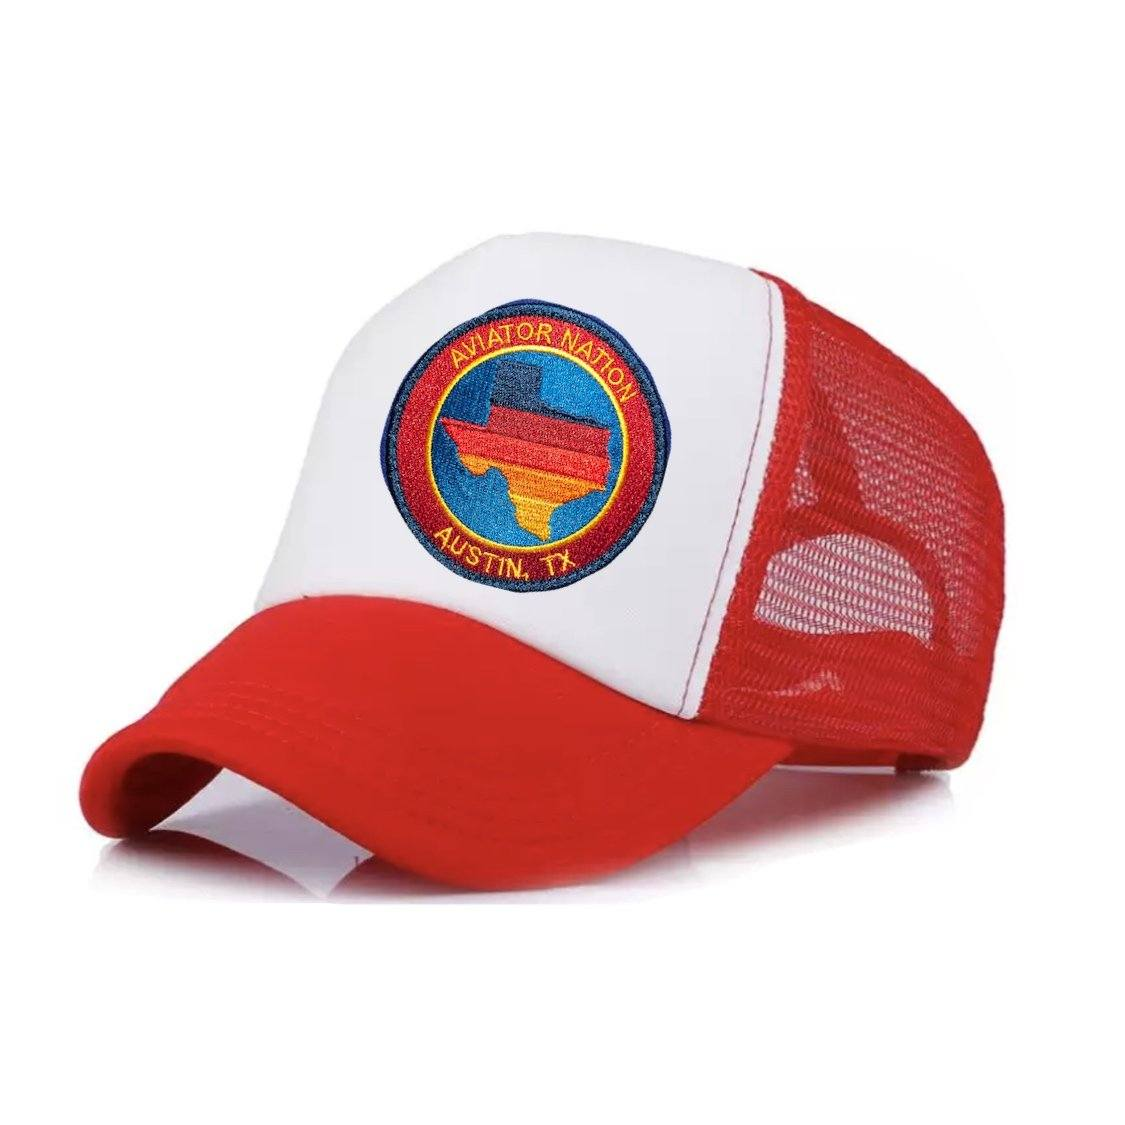 Aviator Nation - Red and White Austin Texas Kids Vintage Trucker Hat hat Aviator Nation